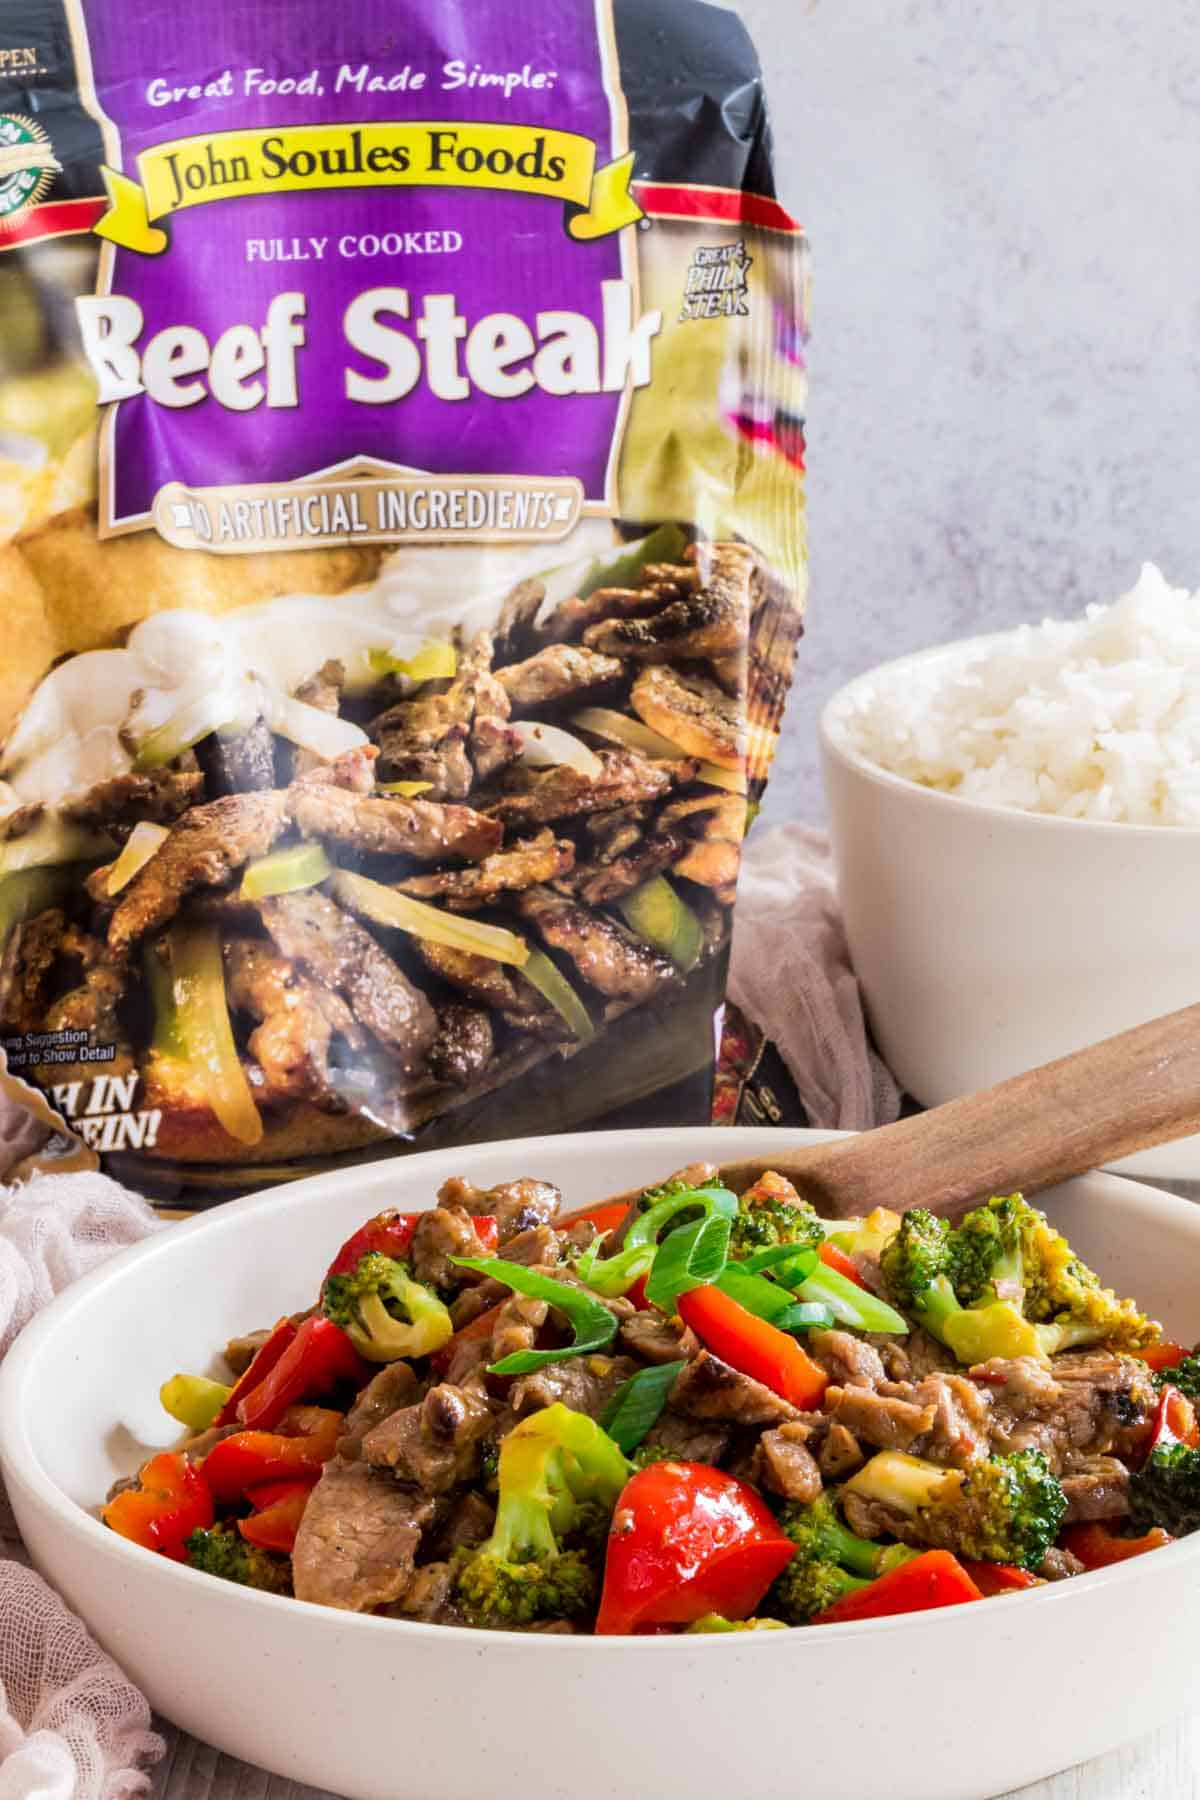 hunan beef in a serving bowl in front of a package of John Soules Foods Fully Cooked Beef Steak